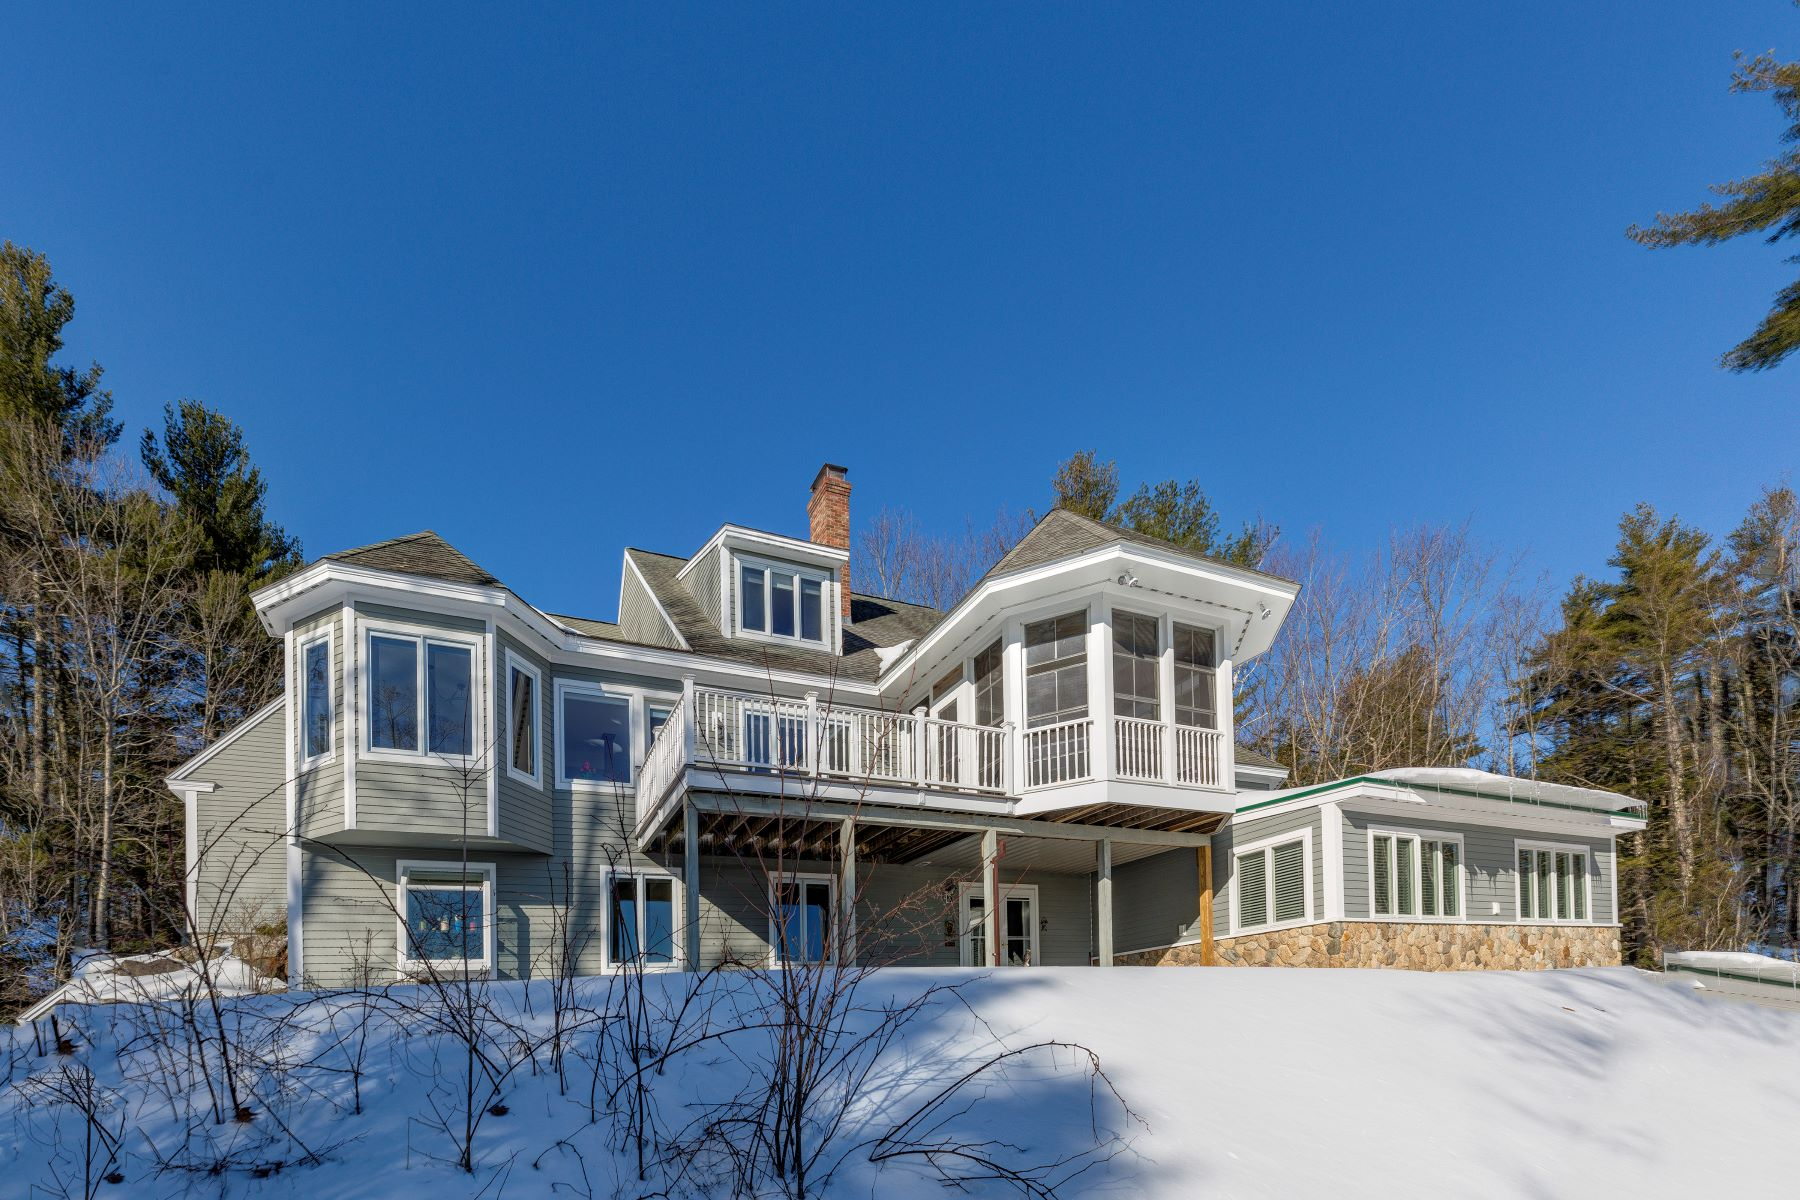 Single Family Home for Sale at Beautiful home with scenic views 450 Hall Farm Rd New London, New Hampshire 03257 United States